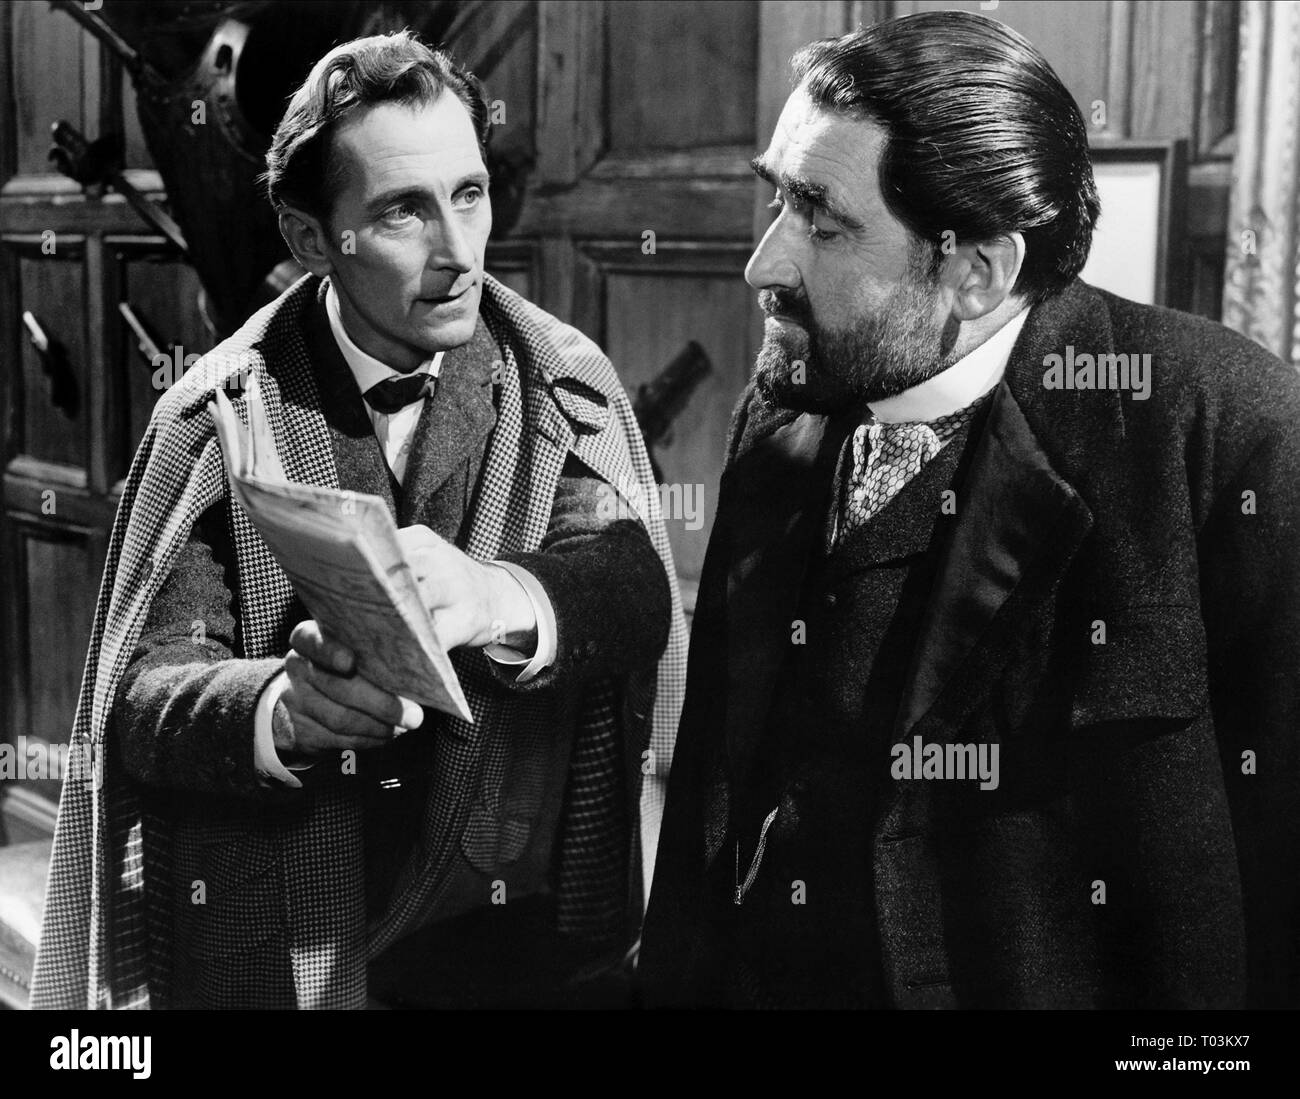 PETER CUSHING, FRANCIS DE WOLFF, THE HOUND OF THE BASKERVILLES, 1959 - Stock Image